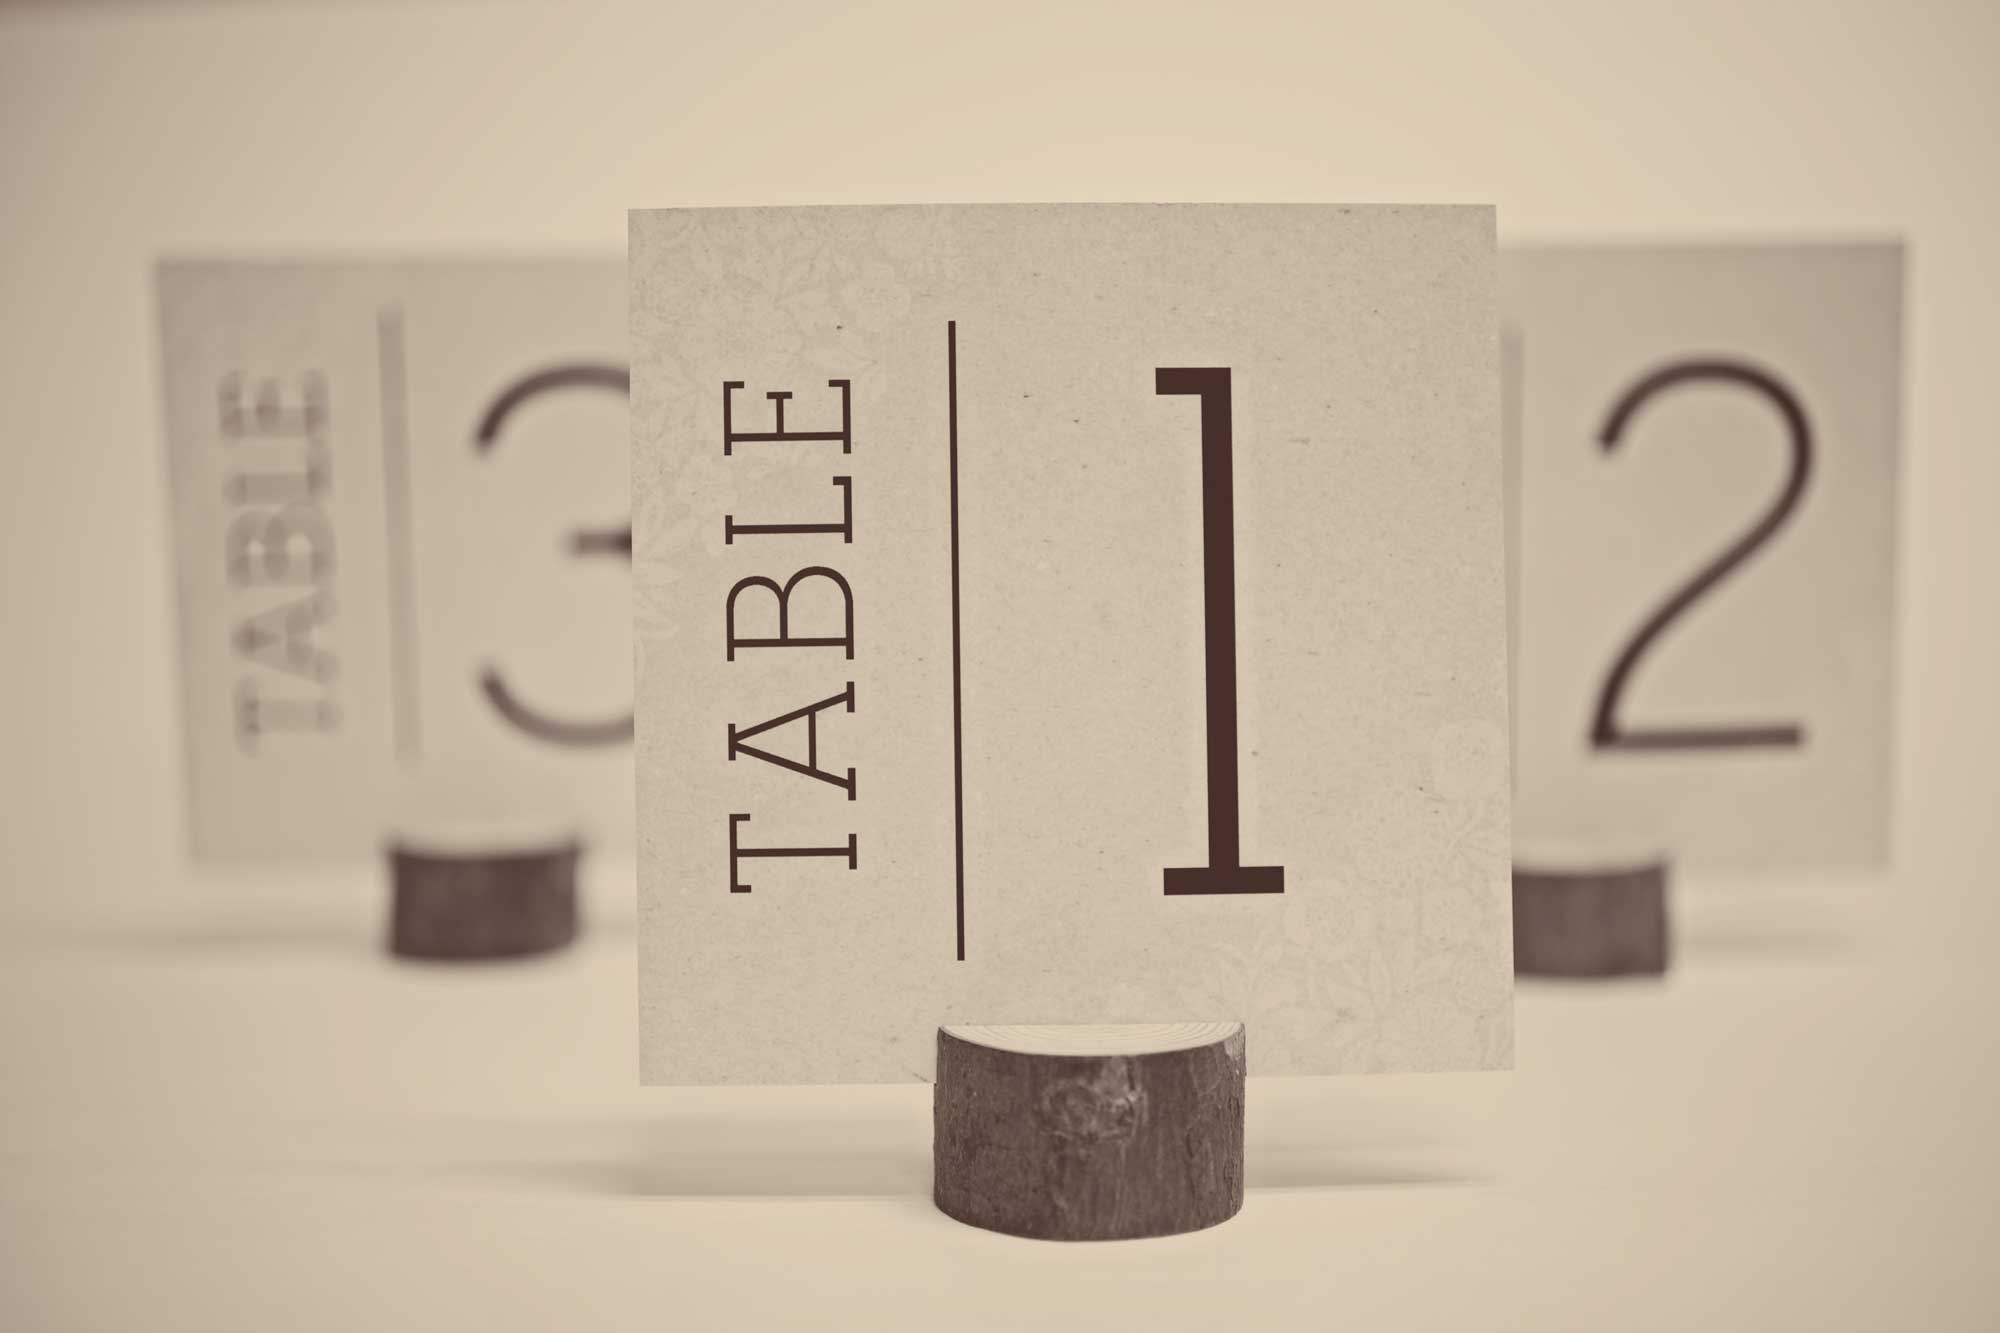 Free Wedding Table Number Cards - Free Printable Table Numbers 1 30